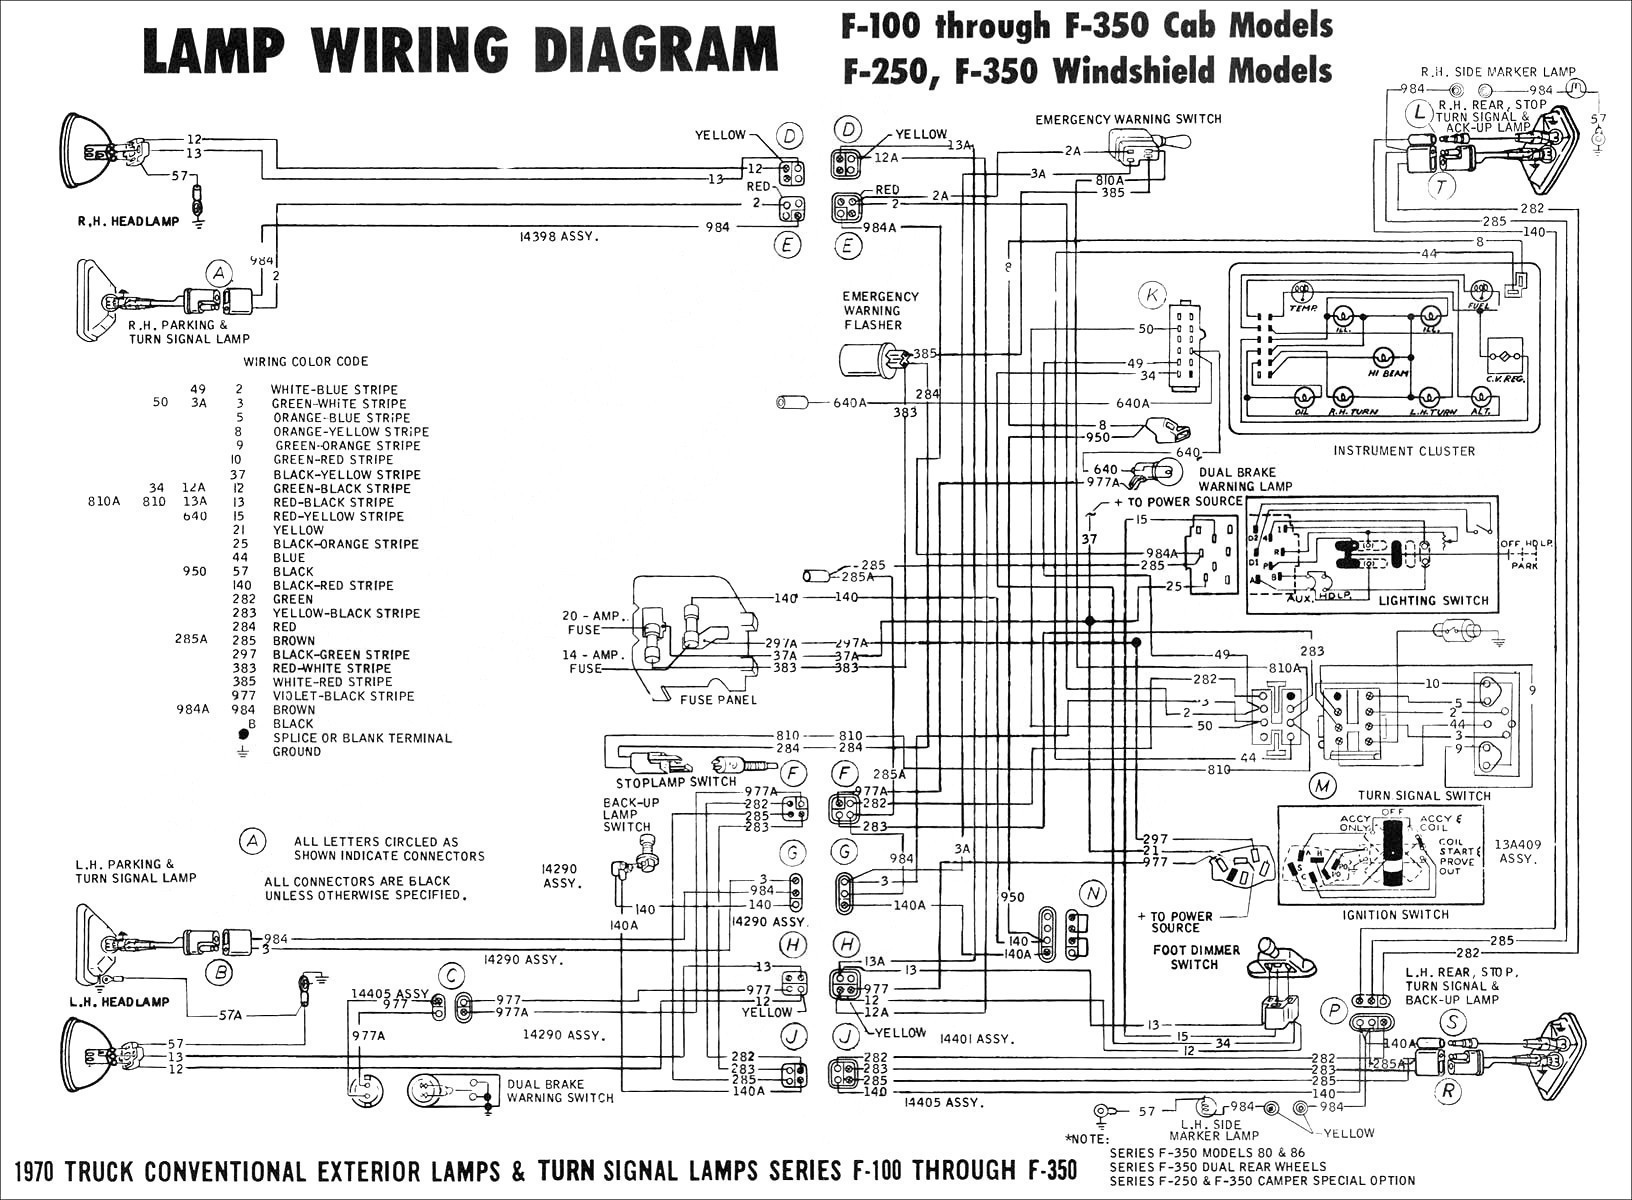 97 Honda Accord Engine Diagram 96 Dodge Wire Diagram Premium Wiring Diagram Design Of 97 Honda Accord Engine Diagram C265c Obd1 Vtec Wiring Diagram